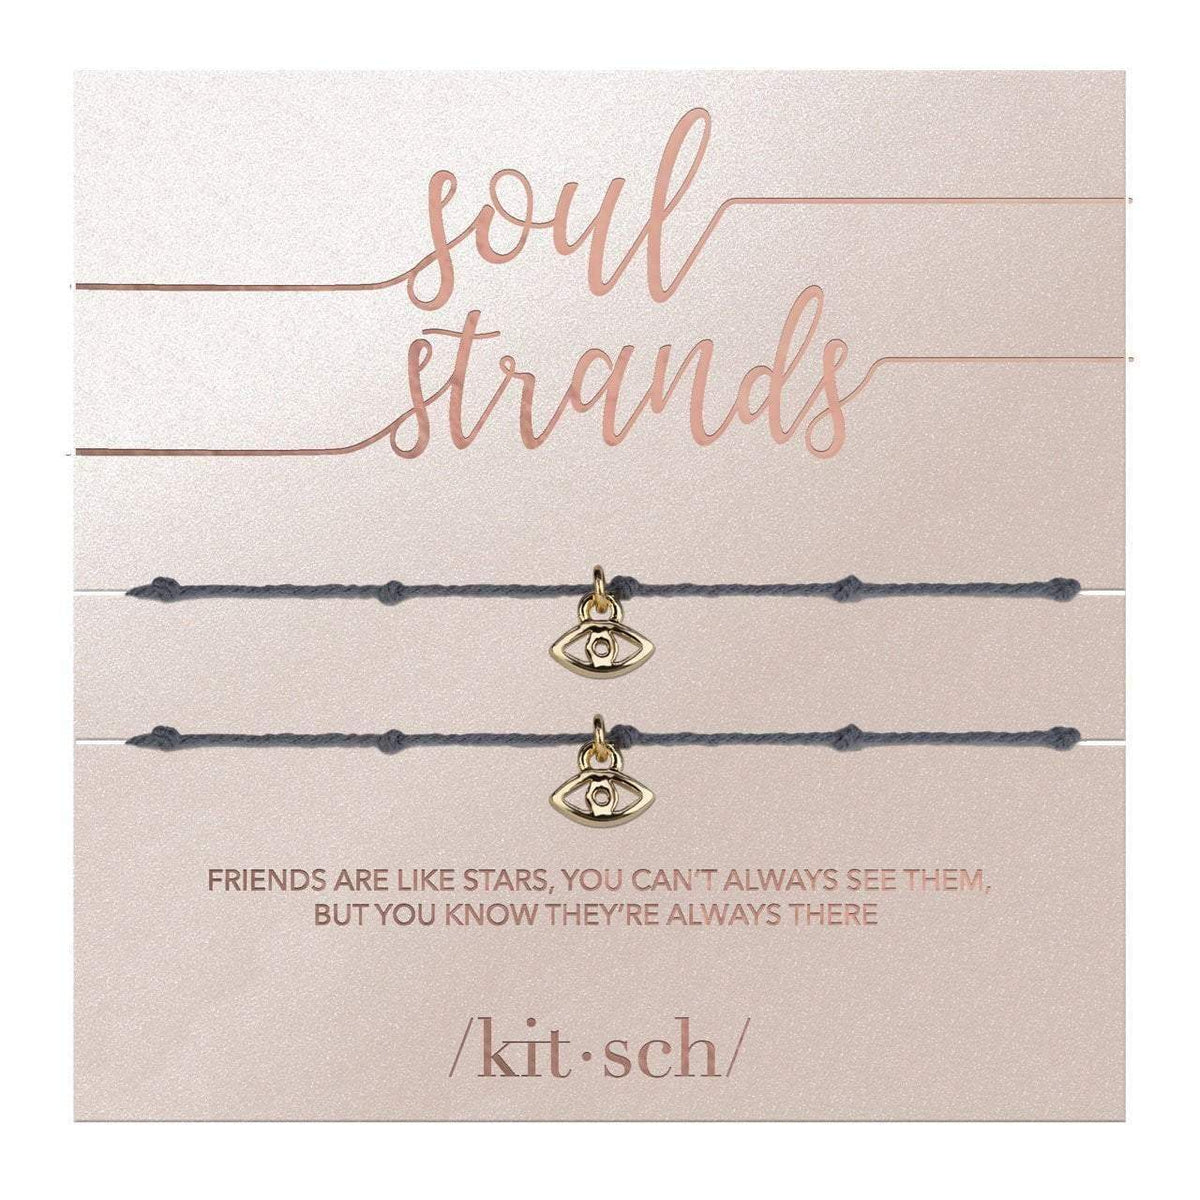 Soul Strands - Evil Eye - KITSCH